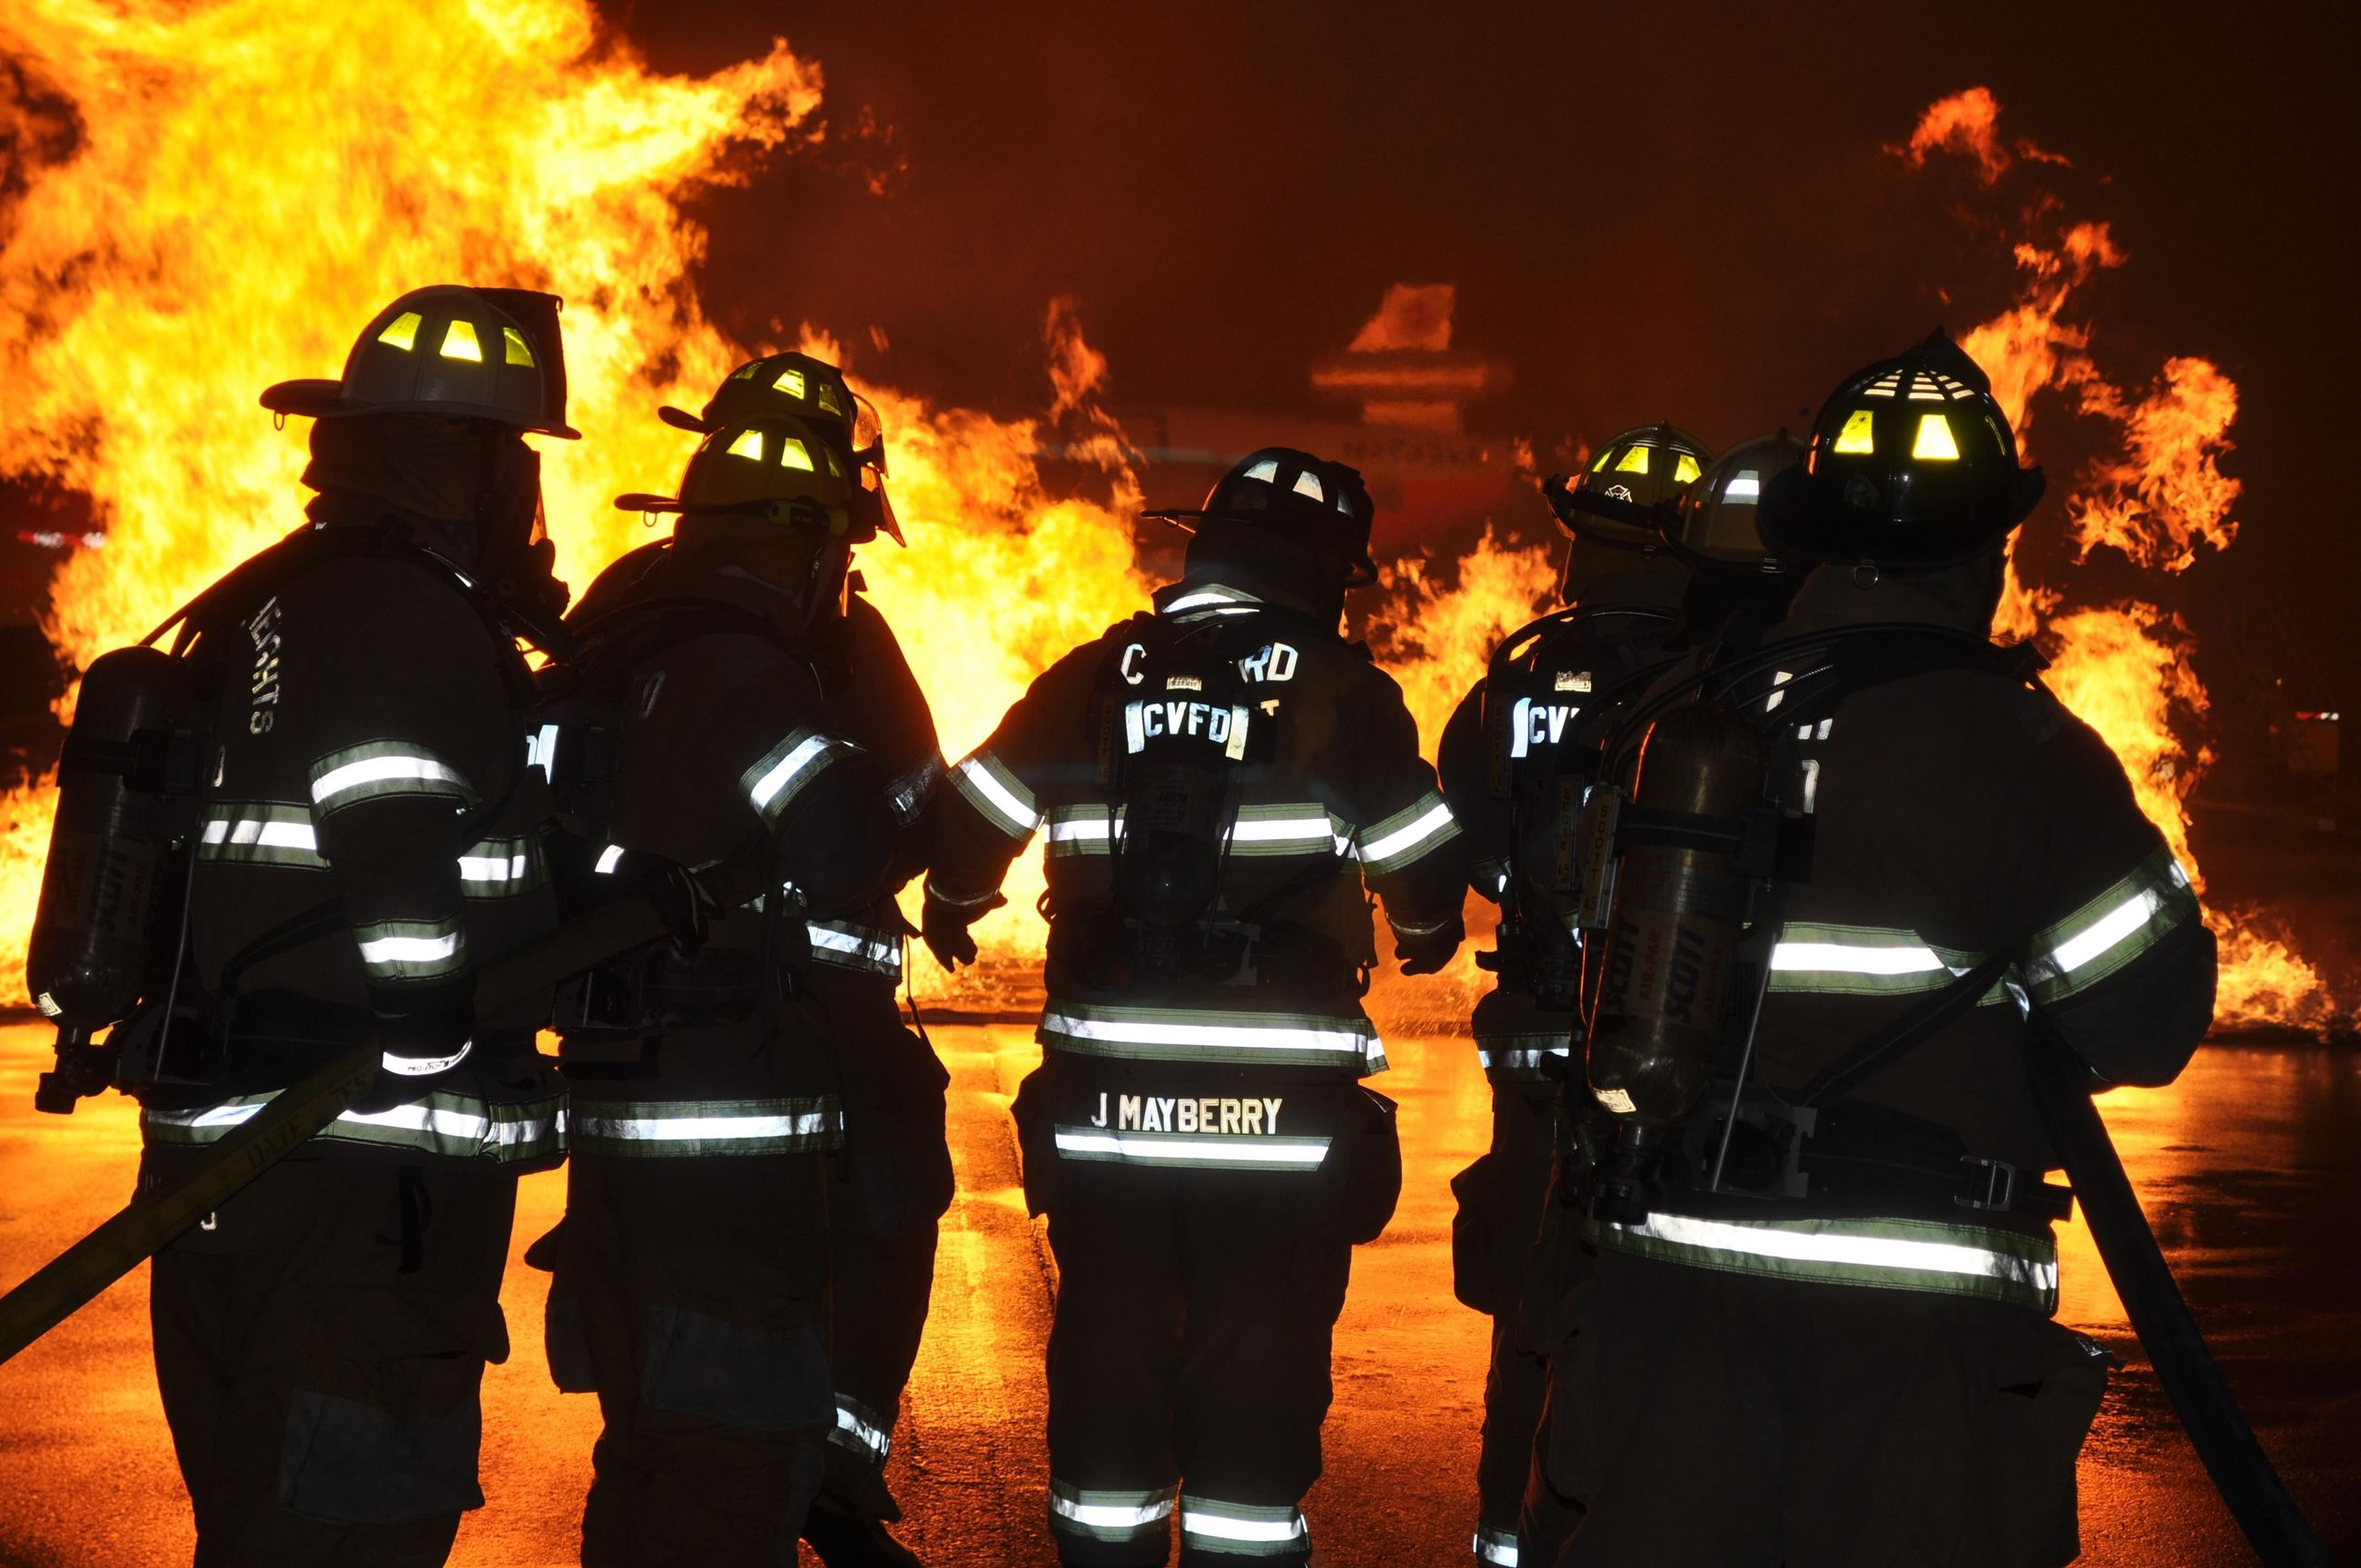 The silhouette of fire fighters at night with the glow of a fire behind them